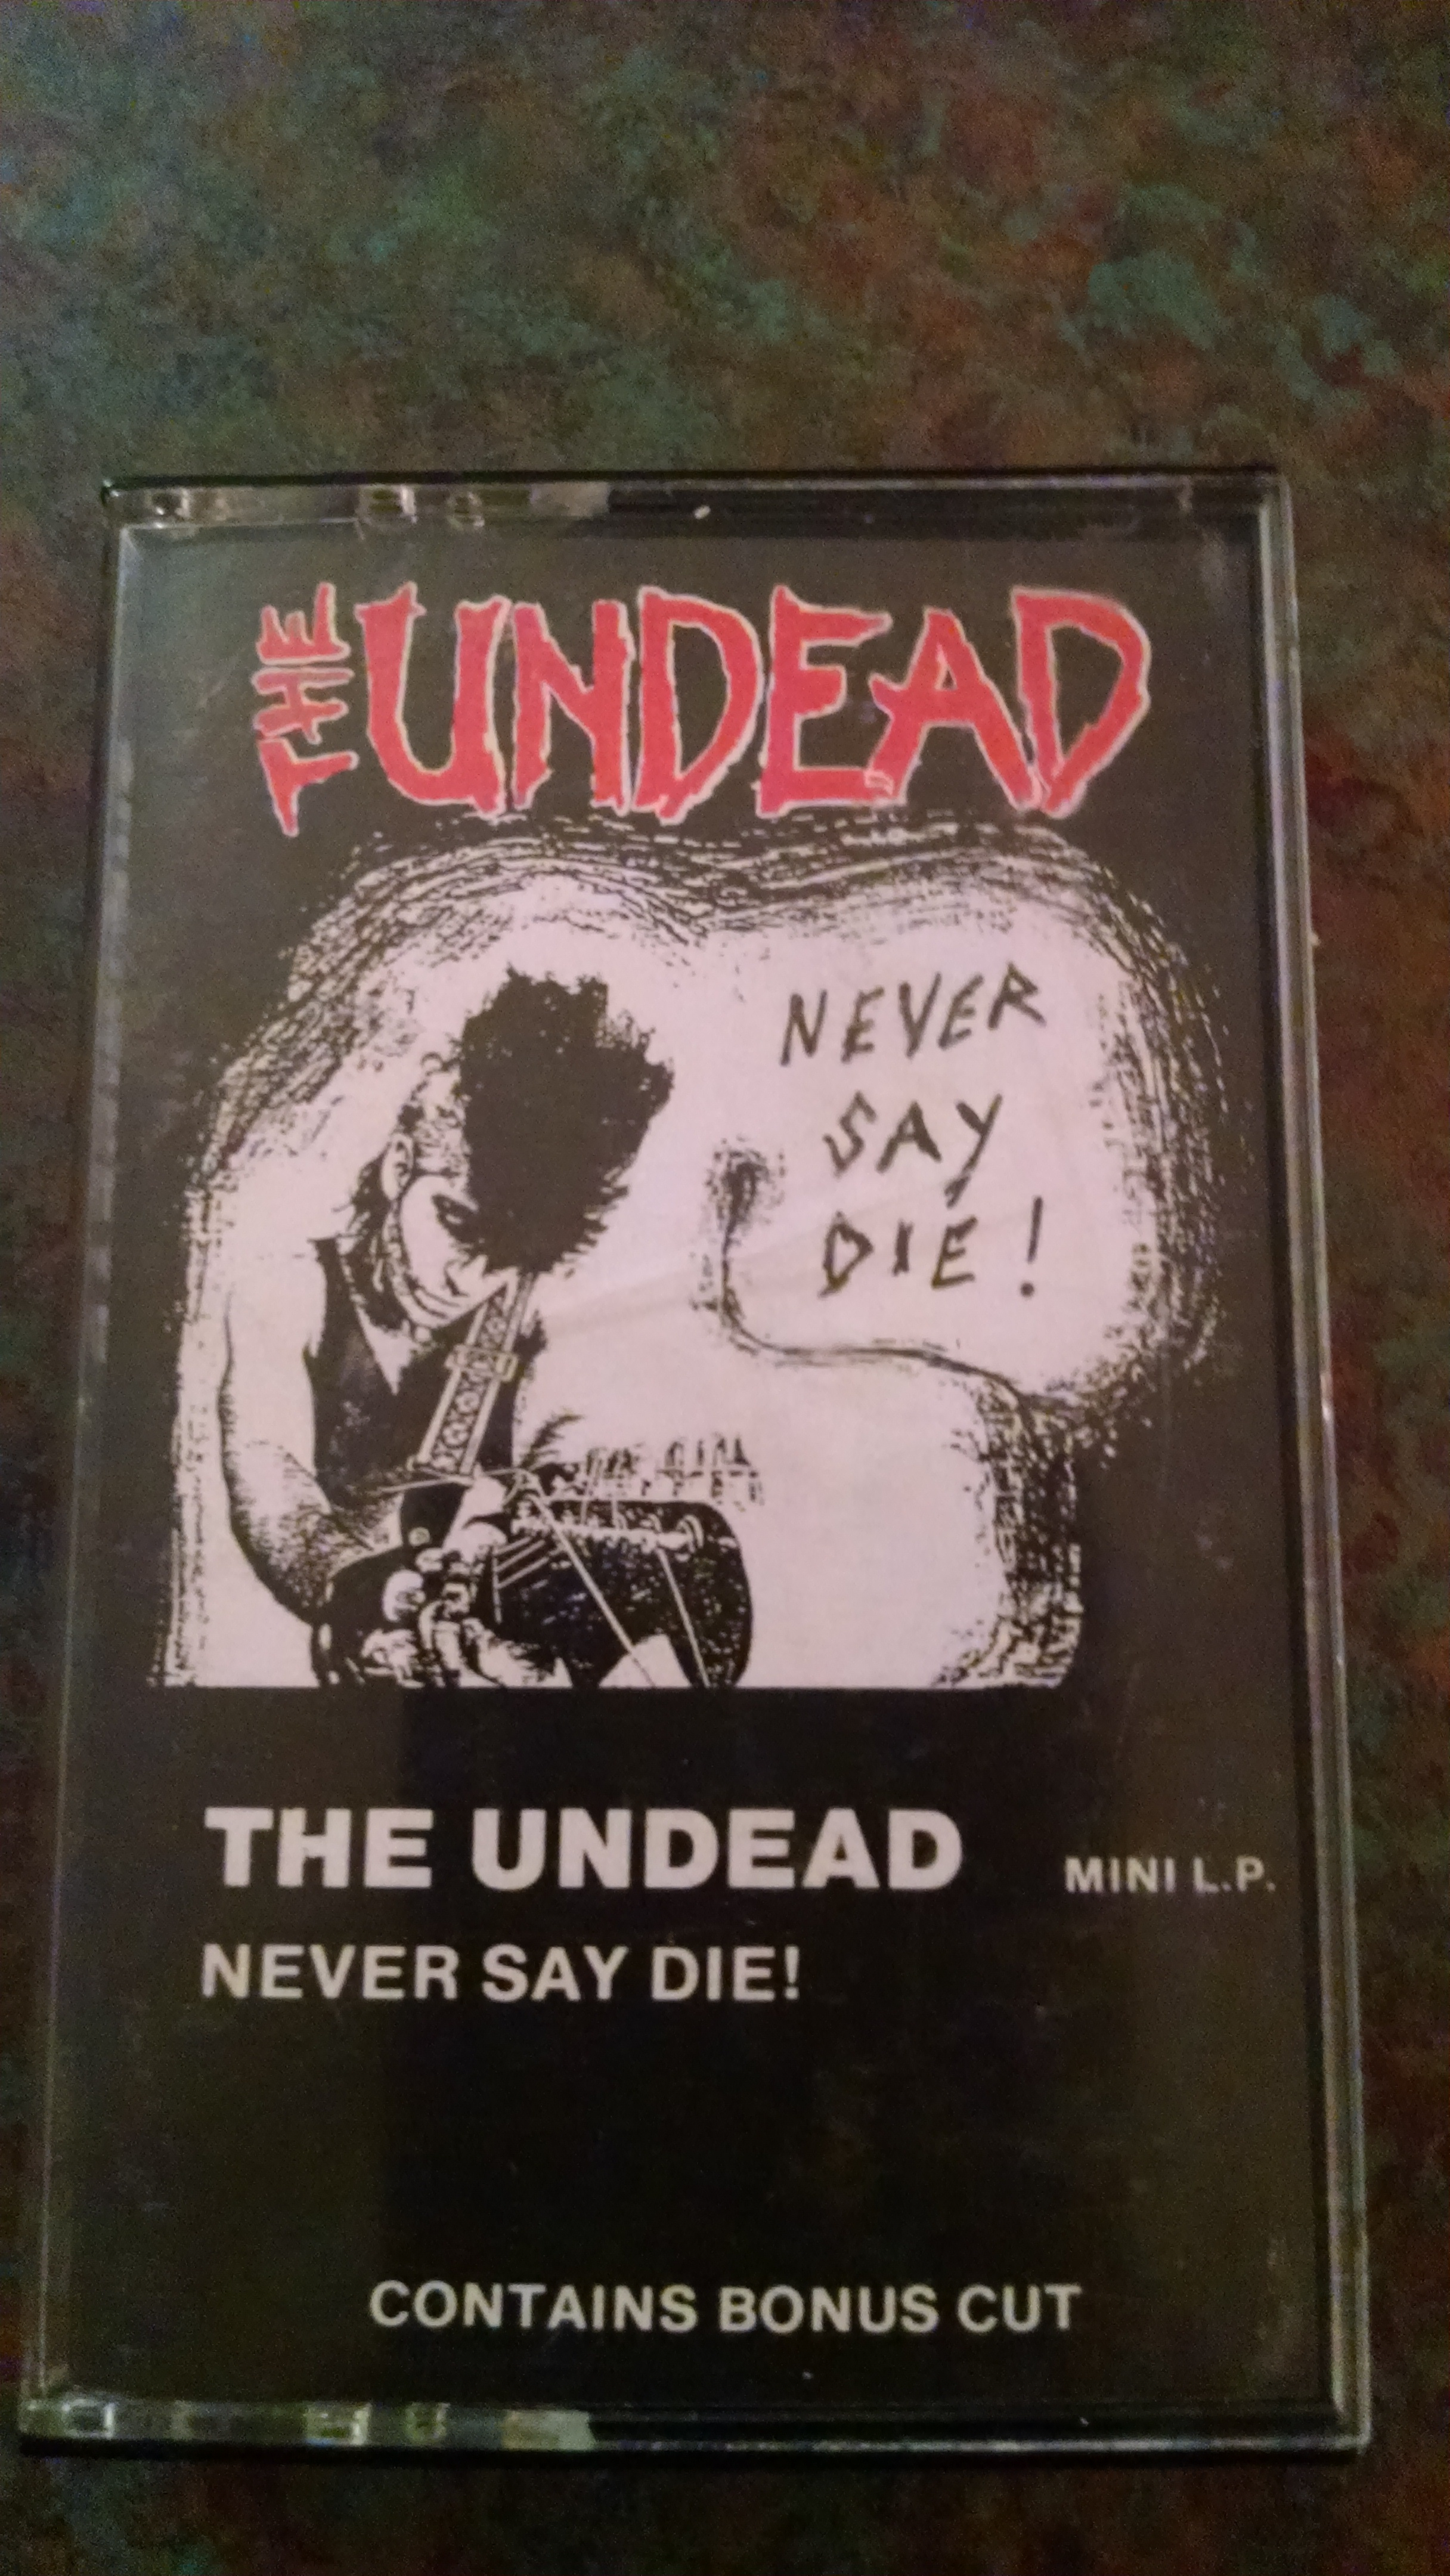 Neither John Nor His Wife Undead